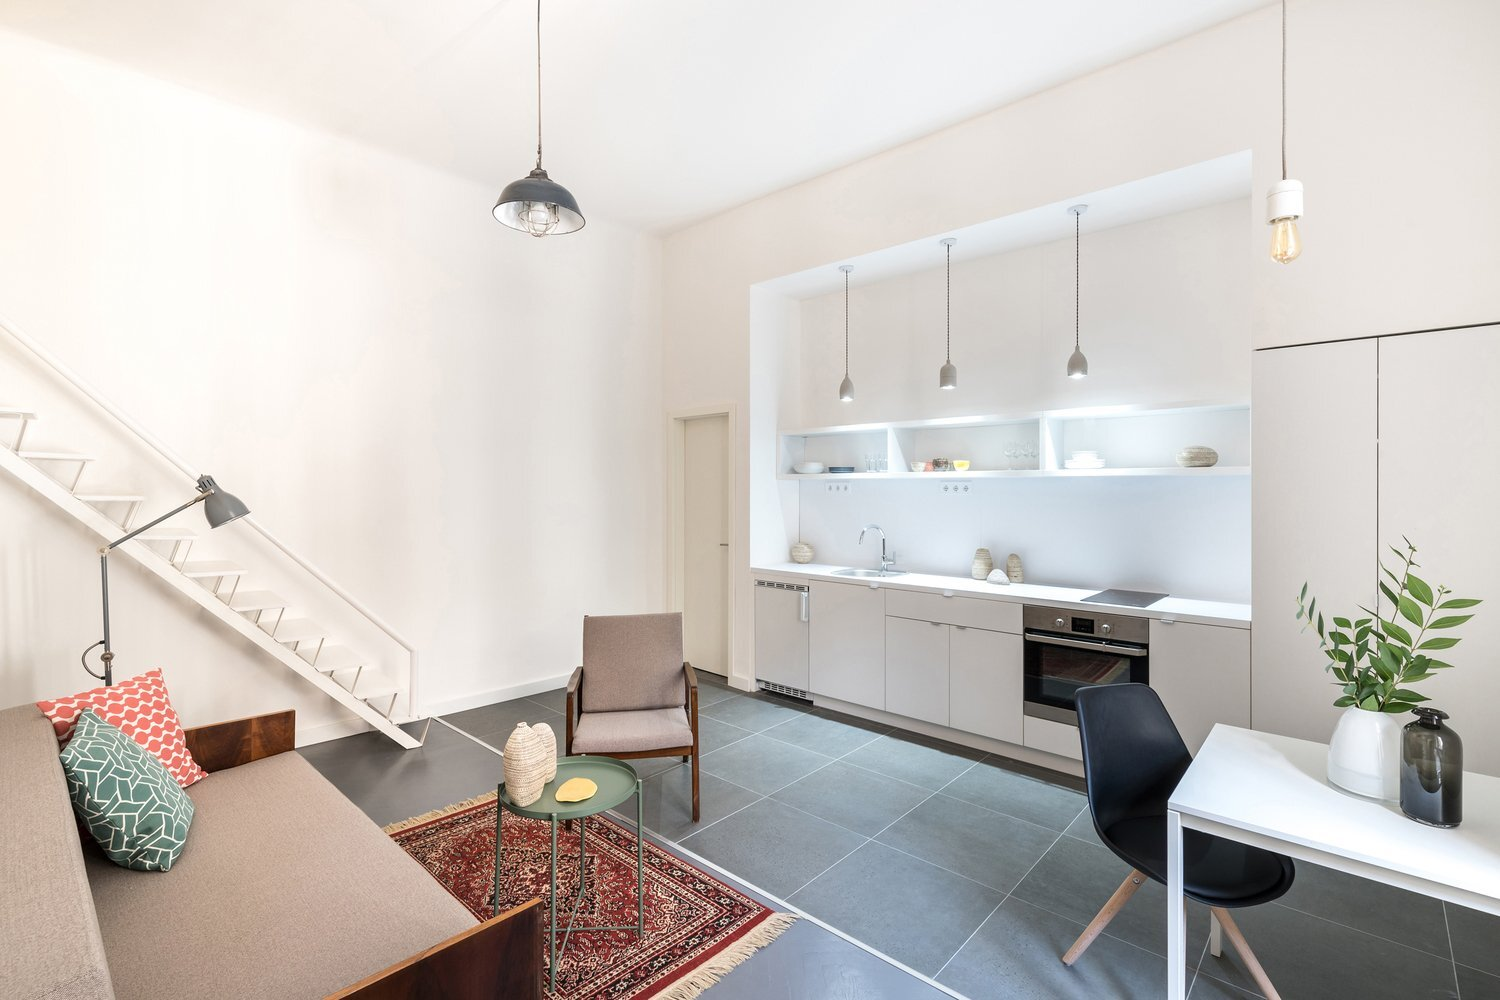 3in1 - Batlab Architects - Hungary - Kitchen - Humble Homes